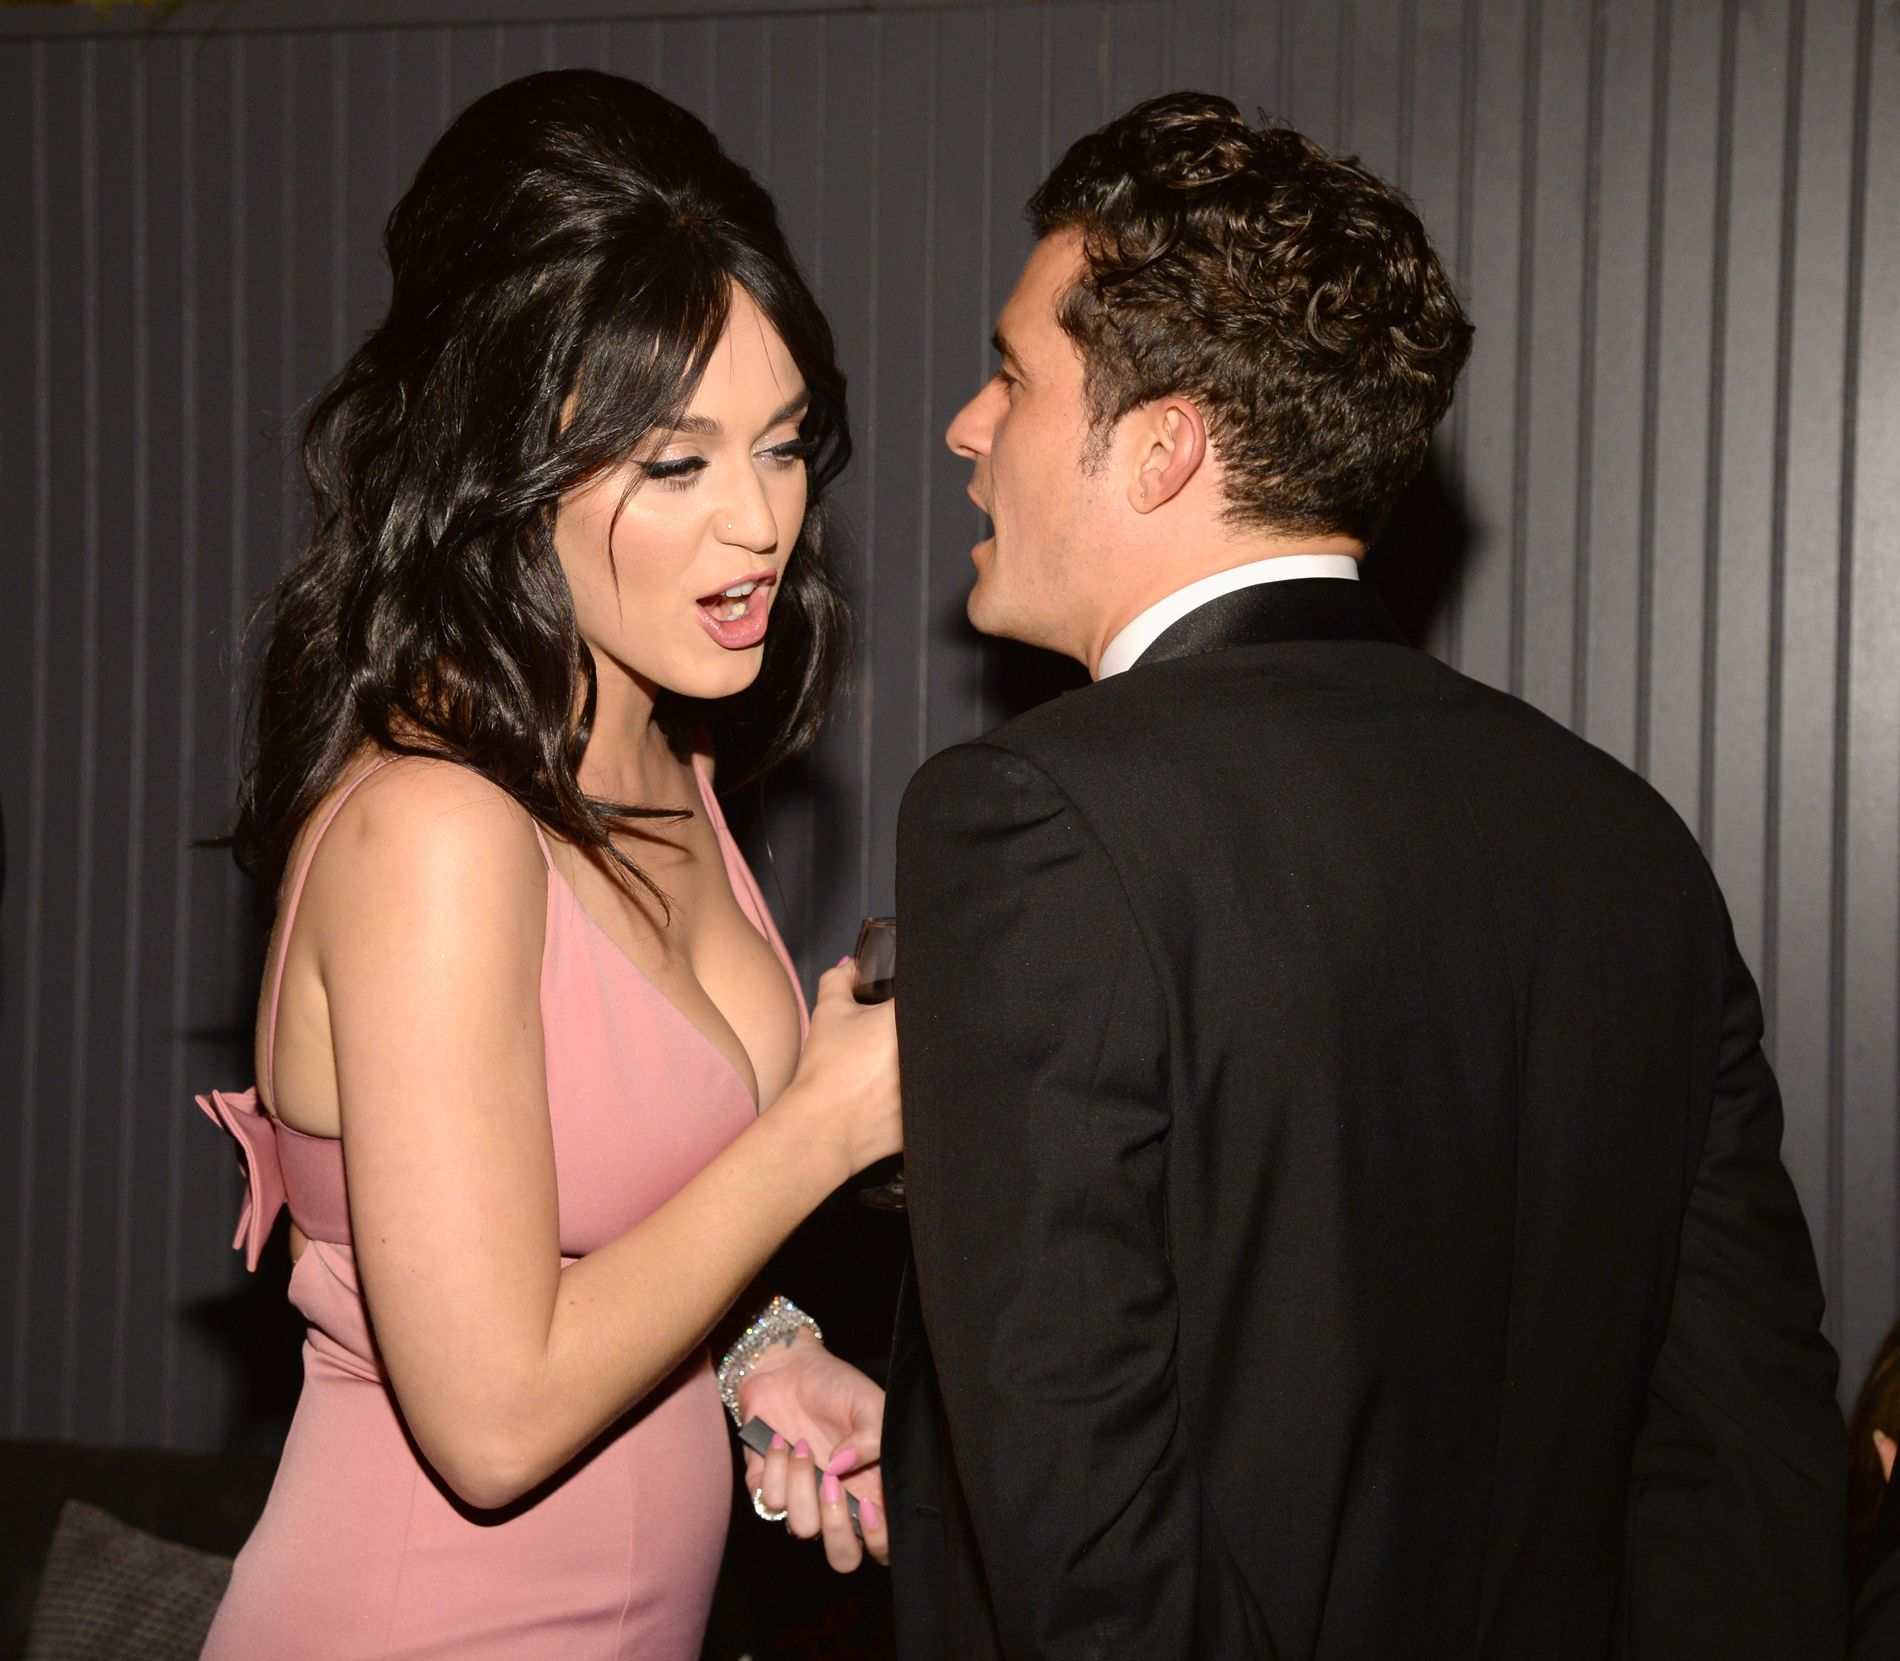 SLUTT: Orlando Bloom og Katy Perry, her avbildet i 2016. Foto: GETTY